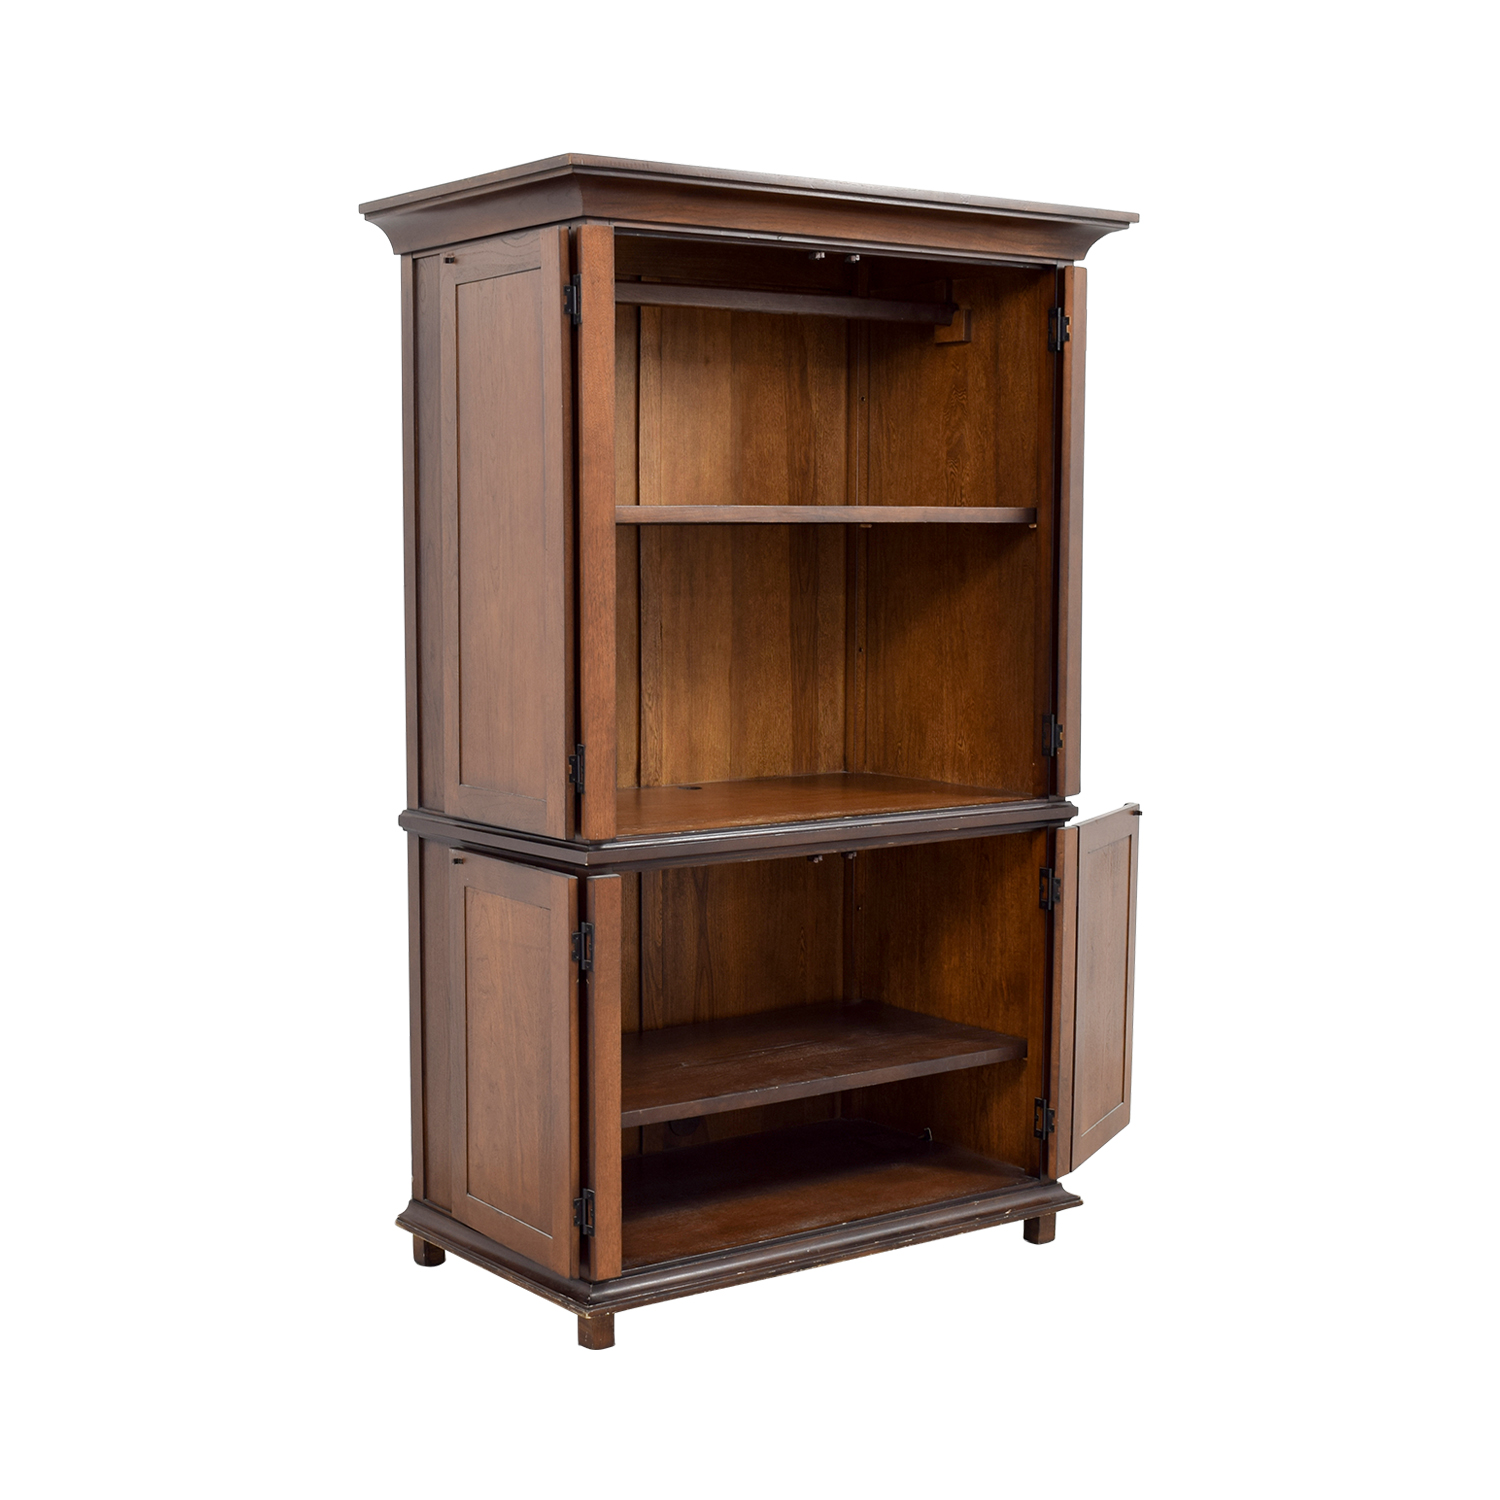 75% Off  Pottery Barn Pottery Barn Armoire With Shelves